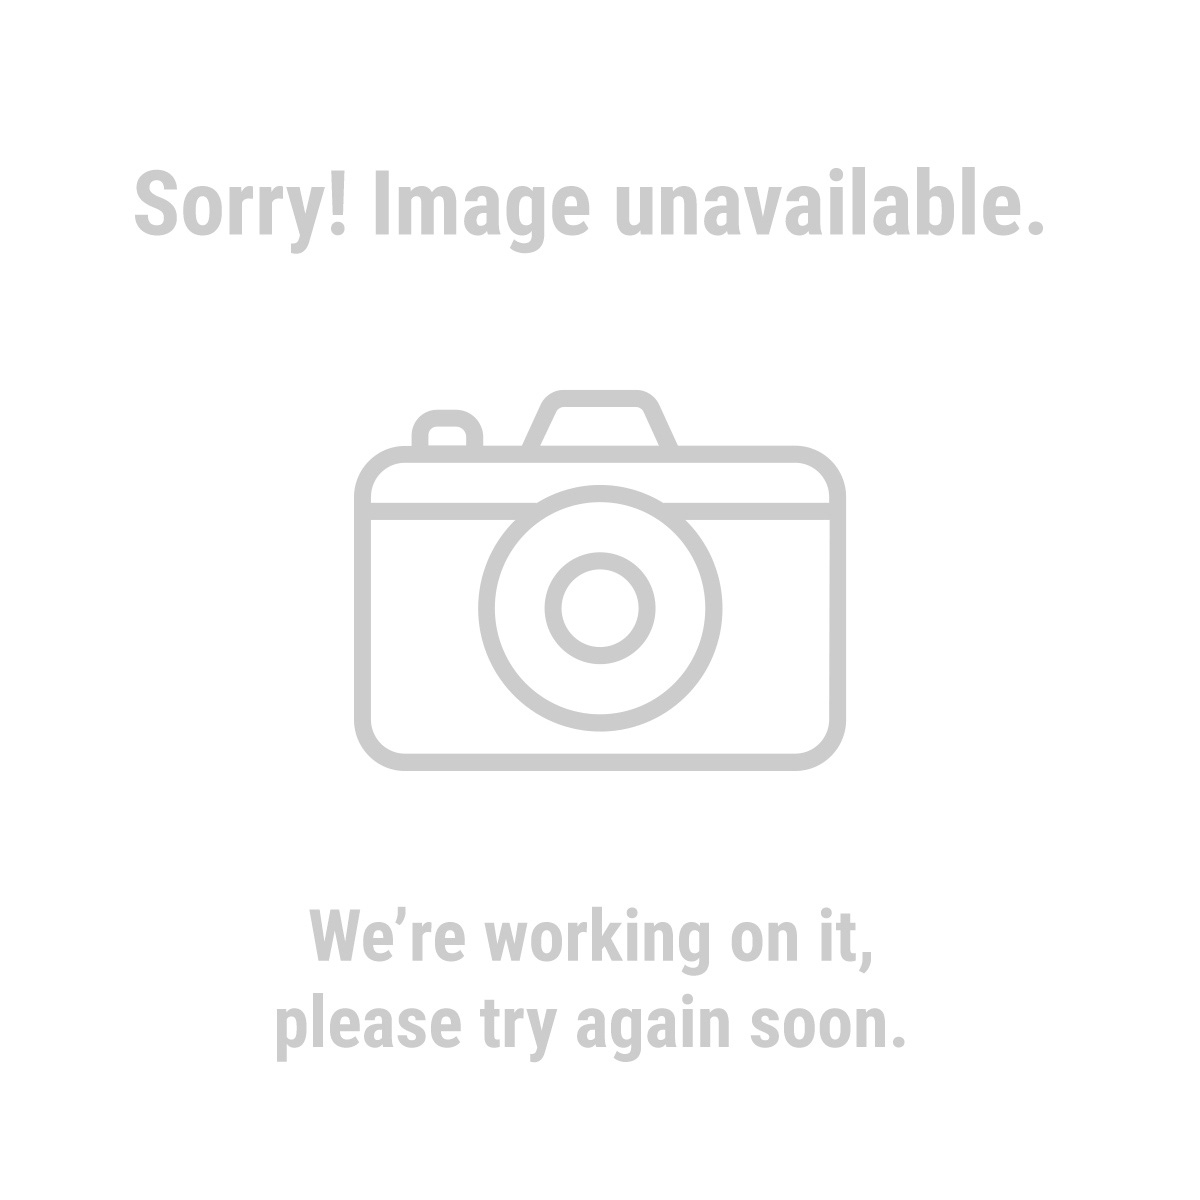 """Warrior 47576 7"""" Cut-off Wheels for Metal, Pack of 10"""